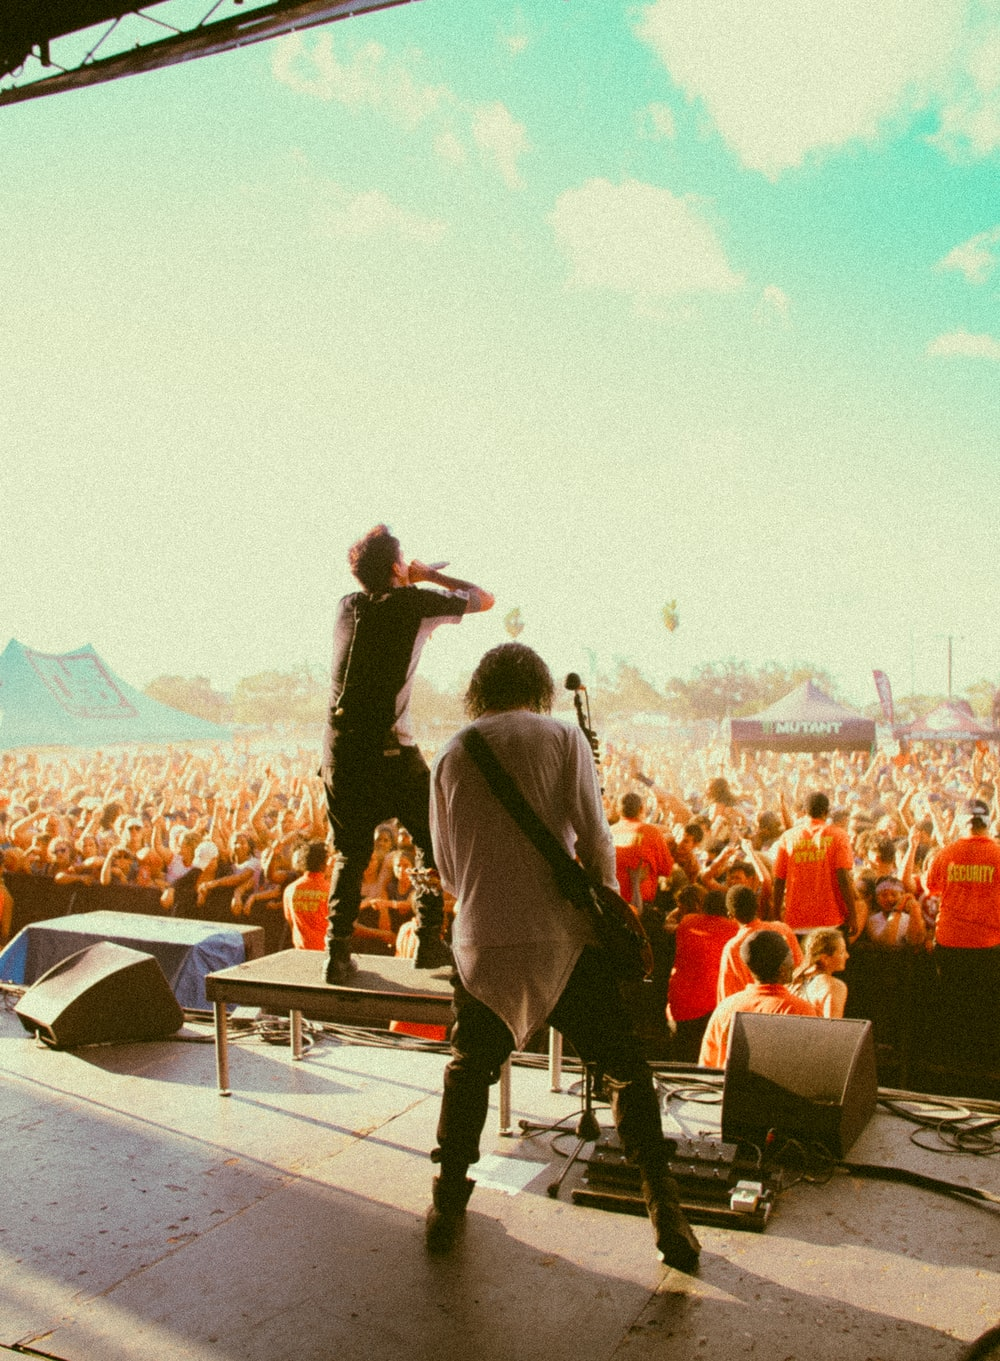 men performing at the stage in front of people during day